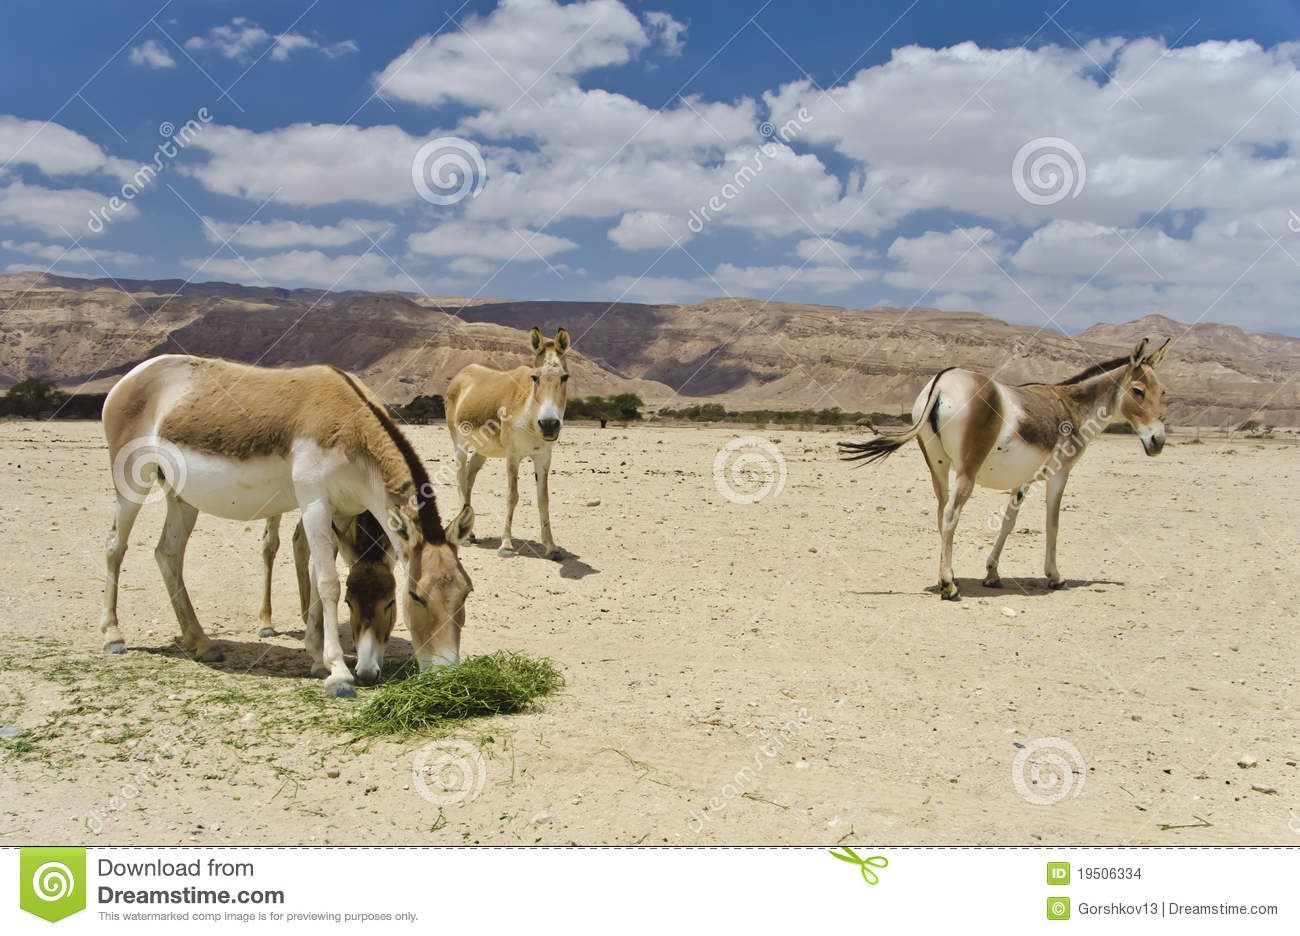 https://thumbs.dreamstime.com/z/onager-ass-negev-desert-israel-19506334.jpg